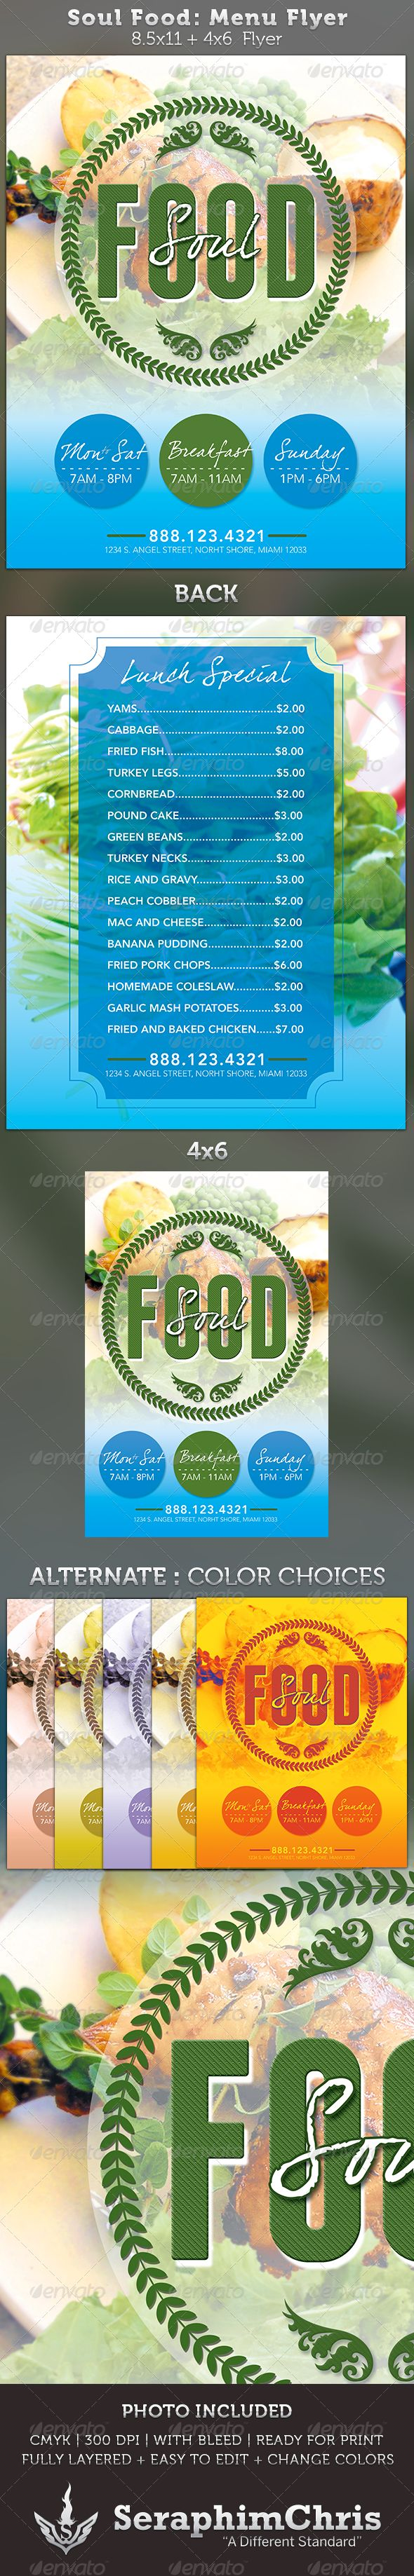 best images about foods flyers restaurant food soul food menu flyer template